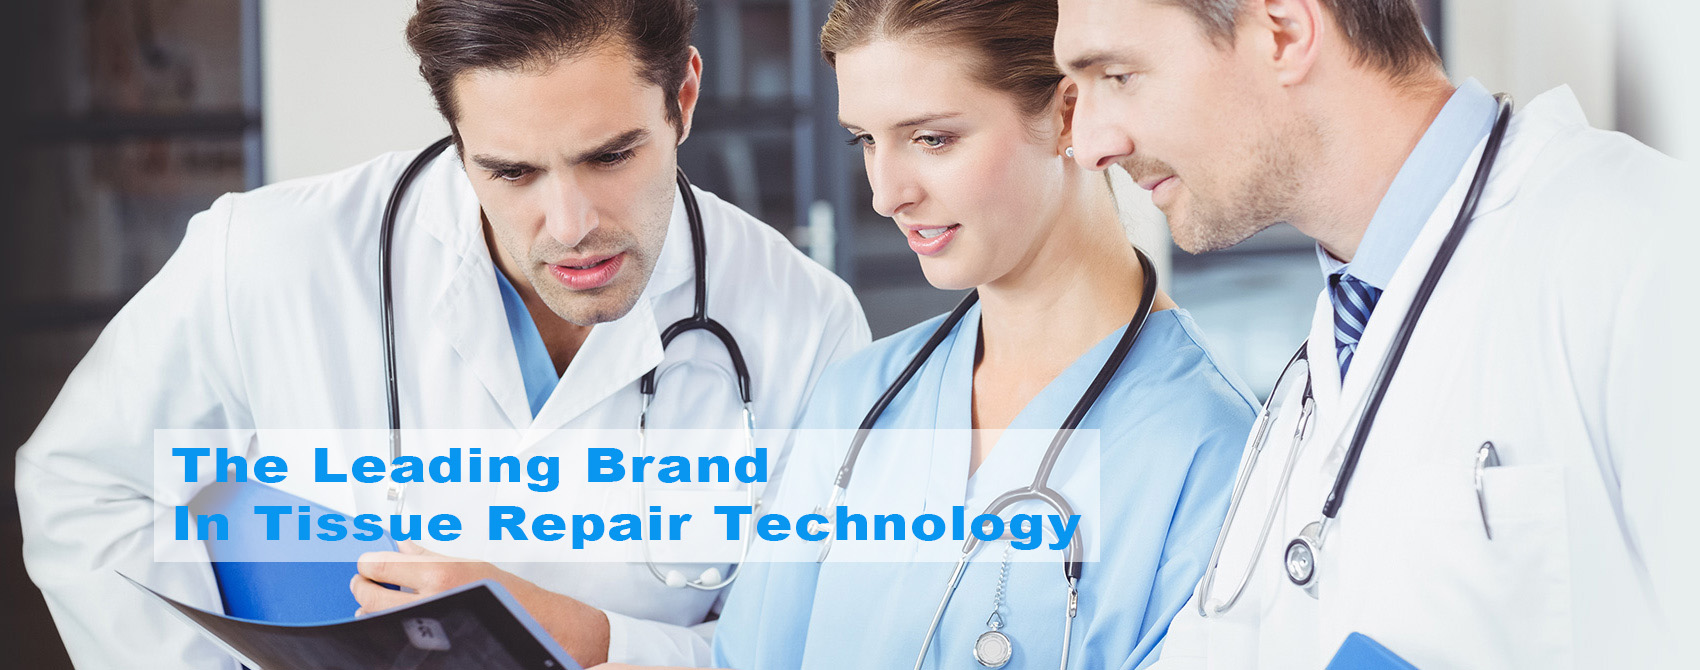 The Leading Brand In Tissue Repair Technology